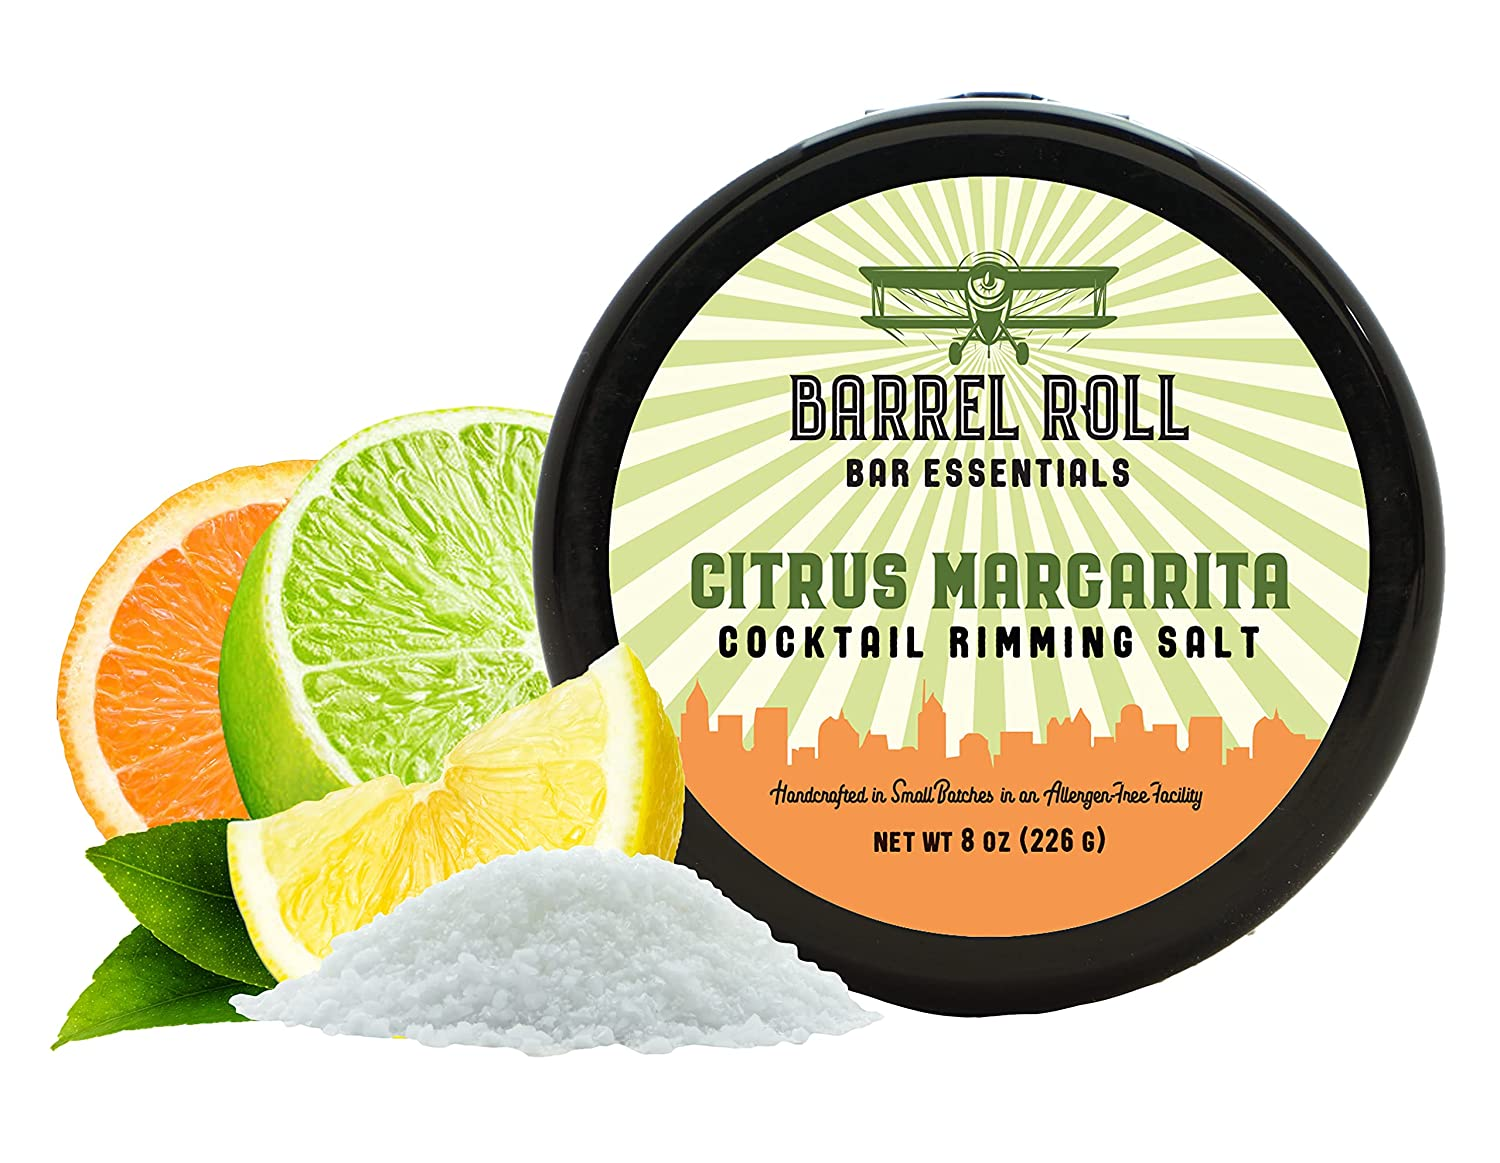 Barrel Roll Bar Essentials New sales A surprise price is realized Cocktail Rimmers - Accessor Bartender